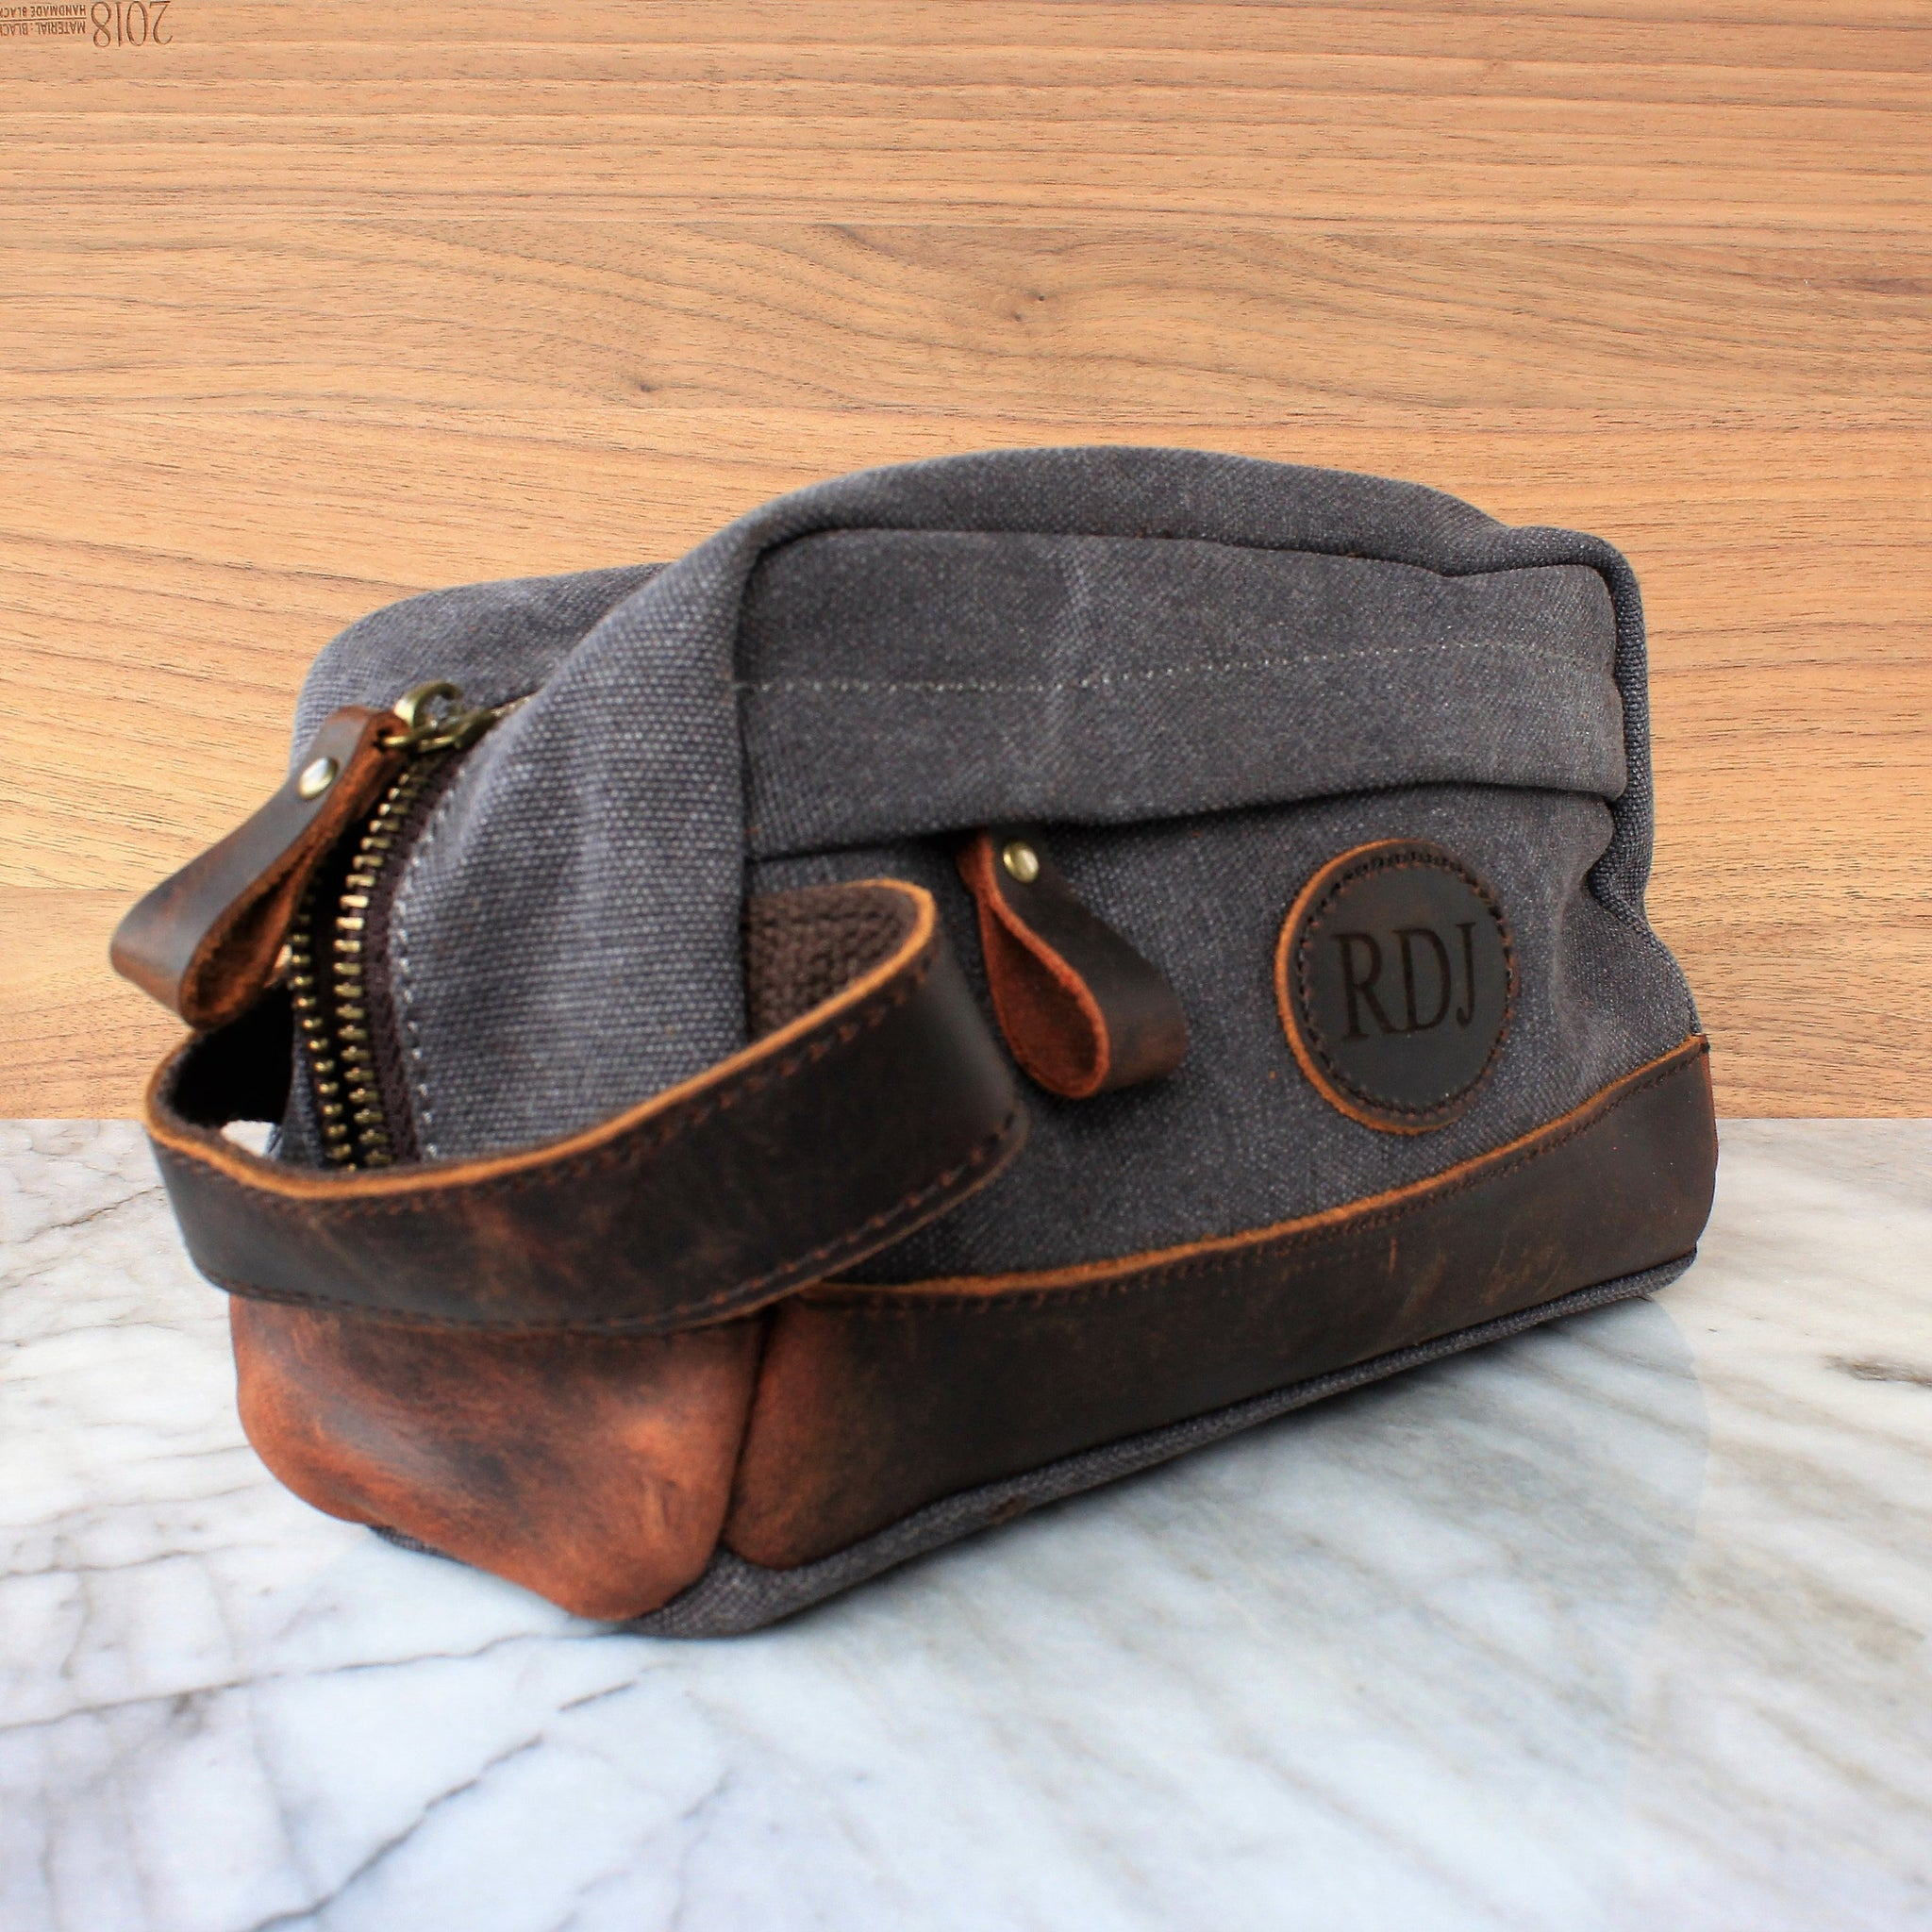 4e802d9ecb09 The Elbert Toiletry Bag in Vintage Black Wash - Personalized Canvas and  Genuine Leather Dopp Kit, Groomsmen Gift, Best Man, Usher, Shave Bag